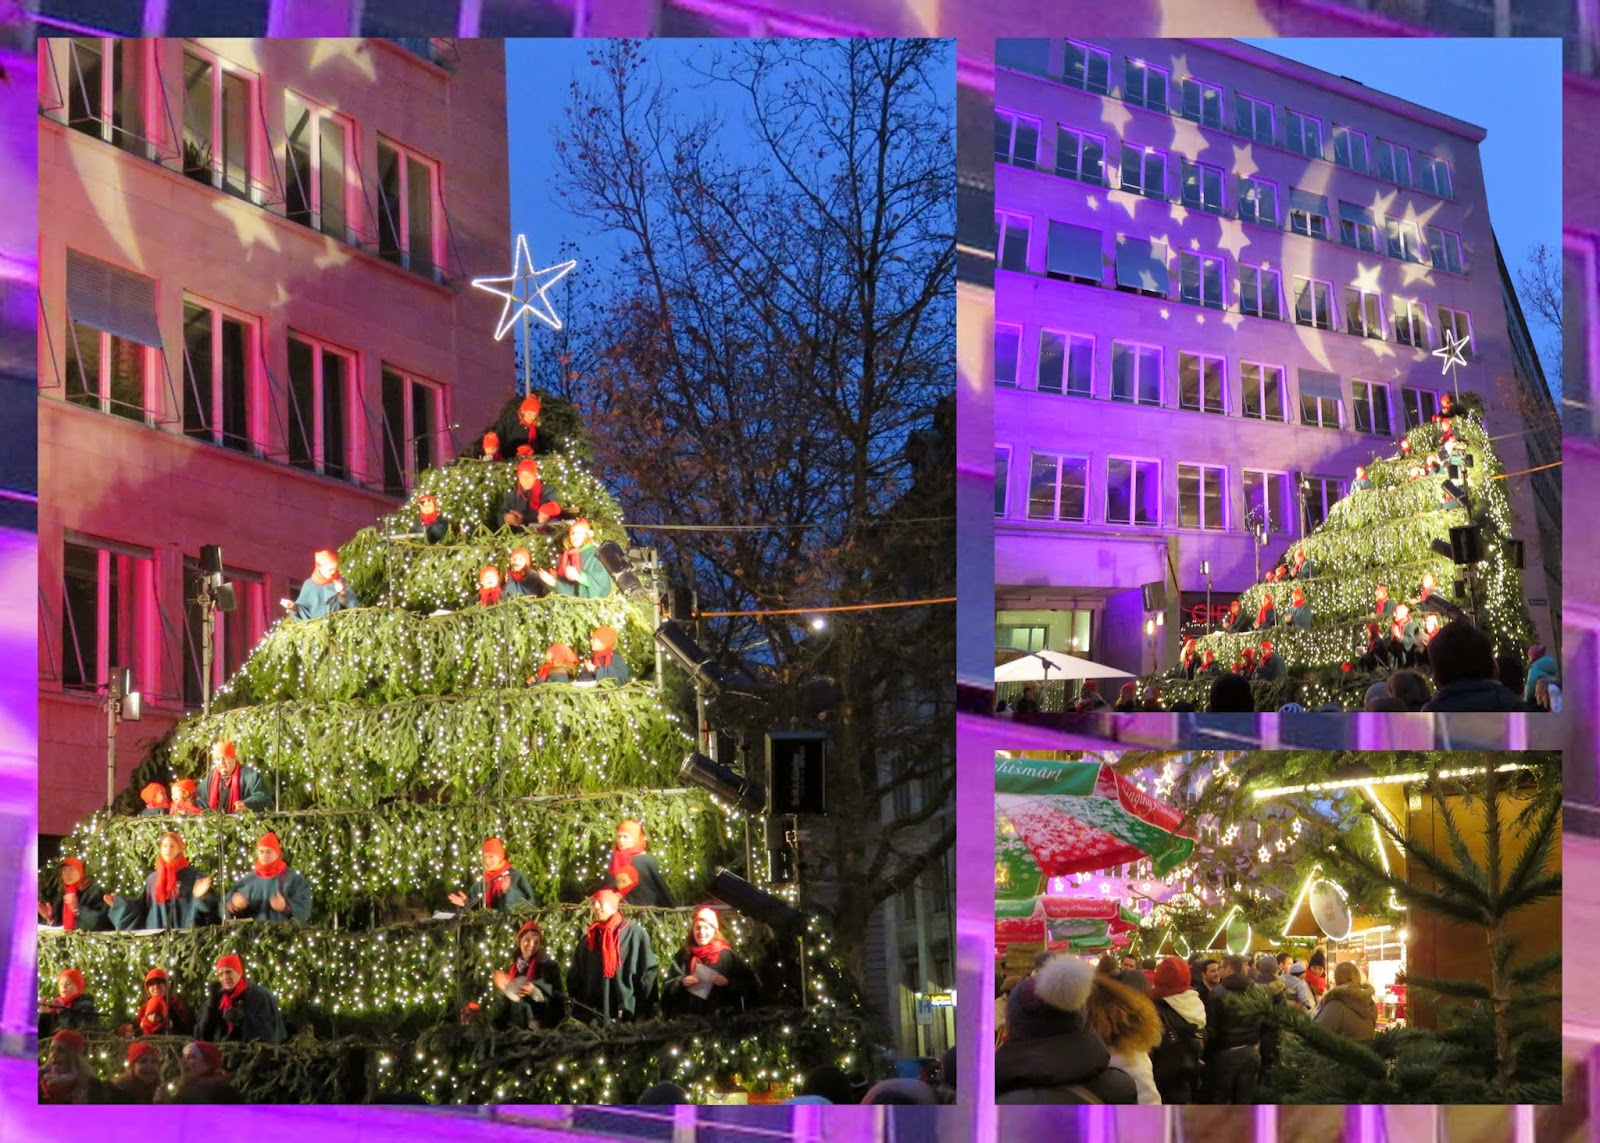 Winter in Zurich - Singing Christmas Tree Market